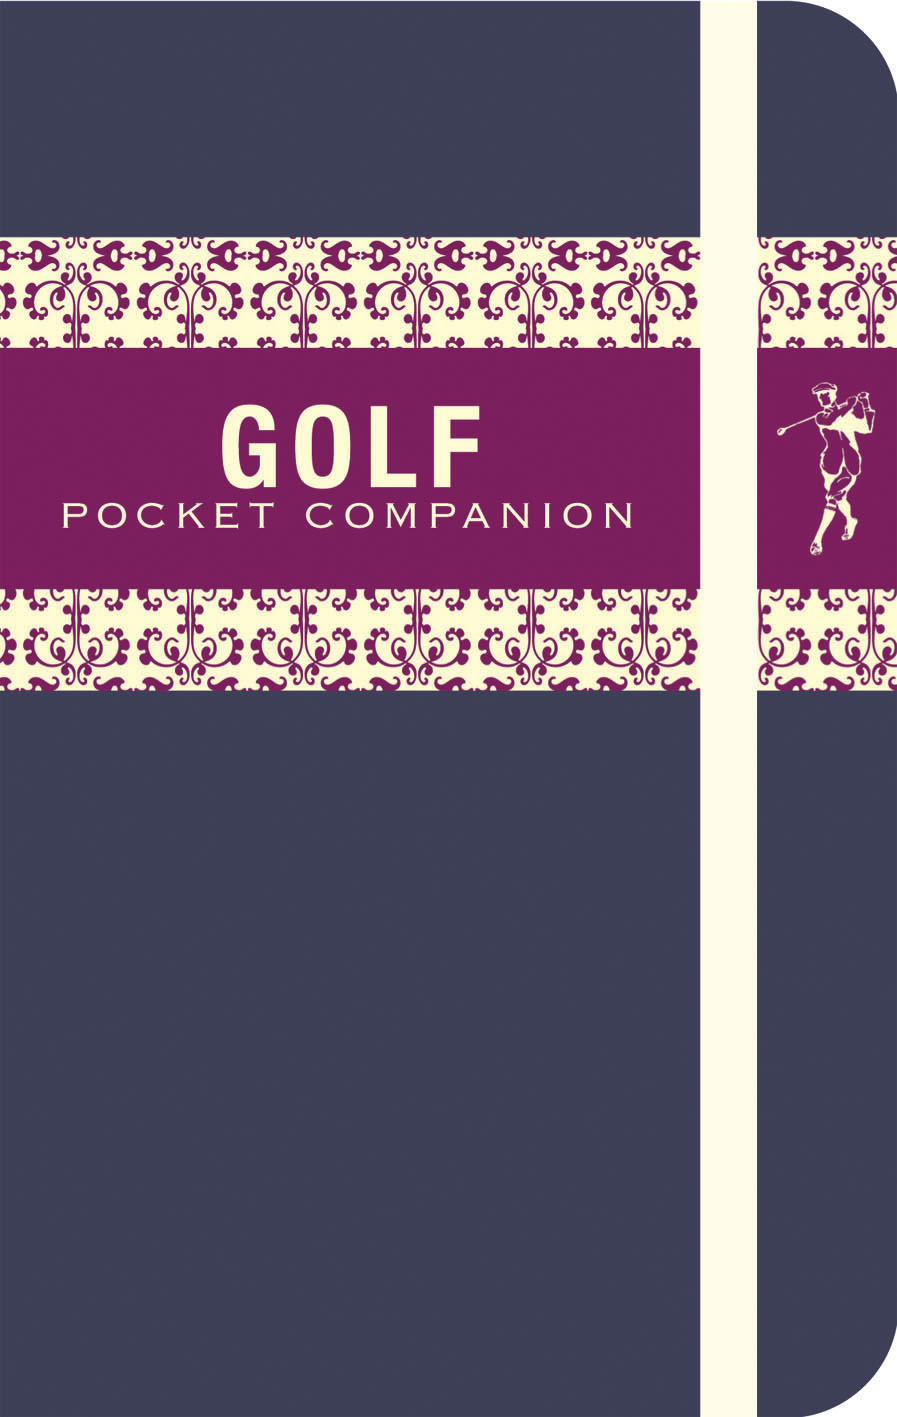 The Golfer's Pocket Companion